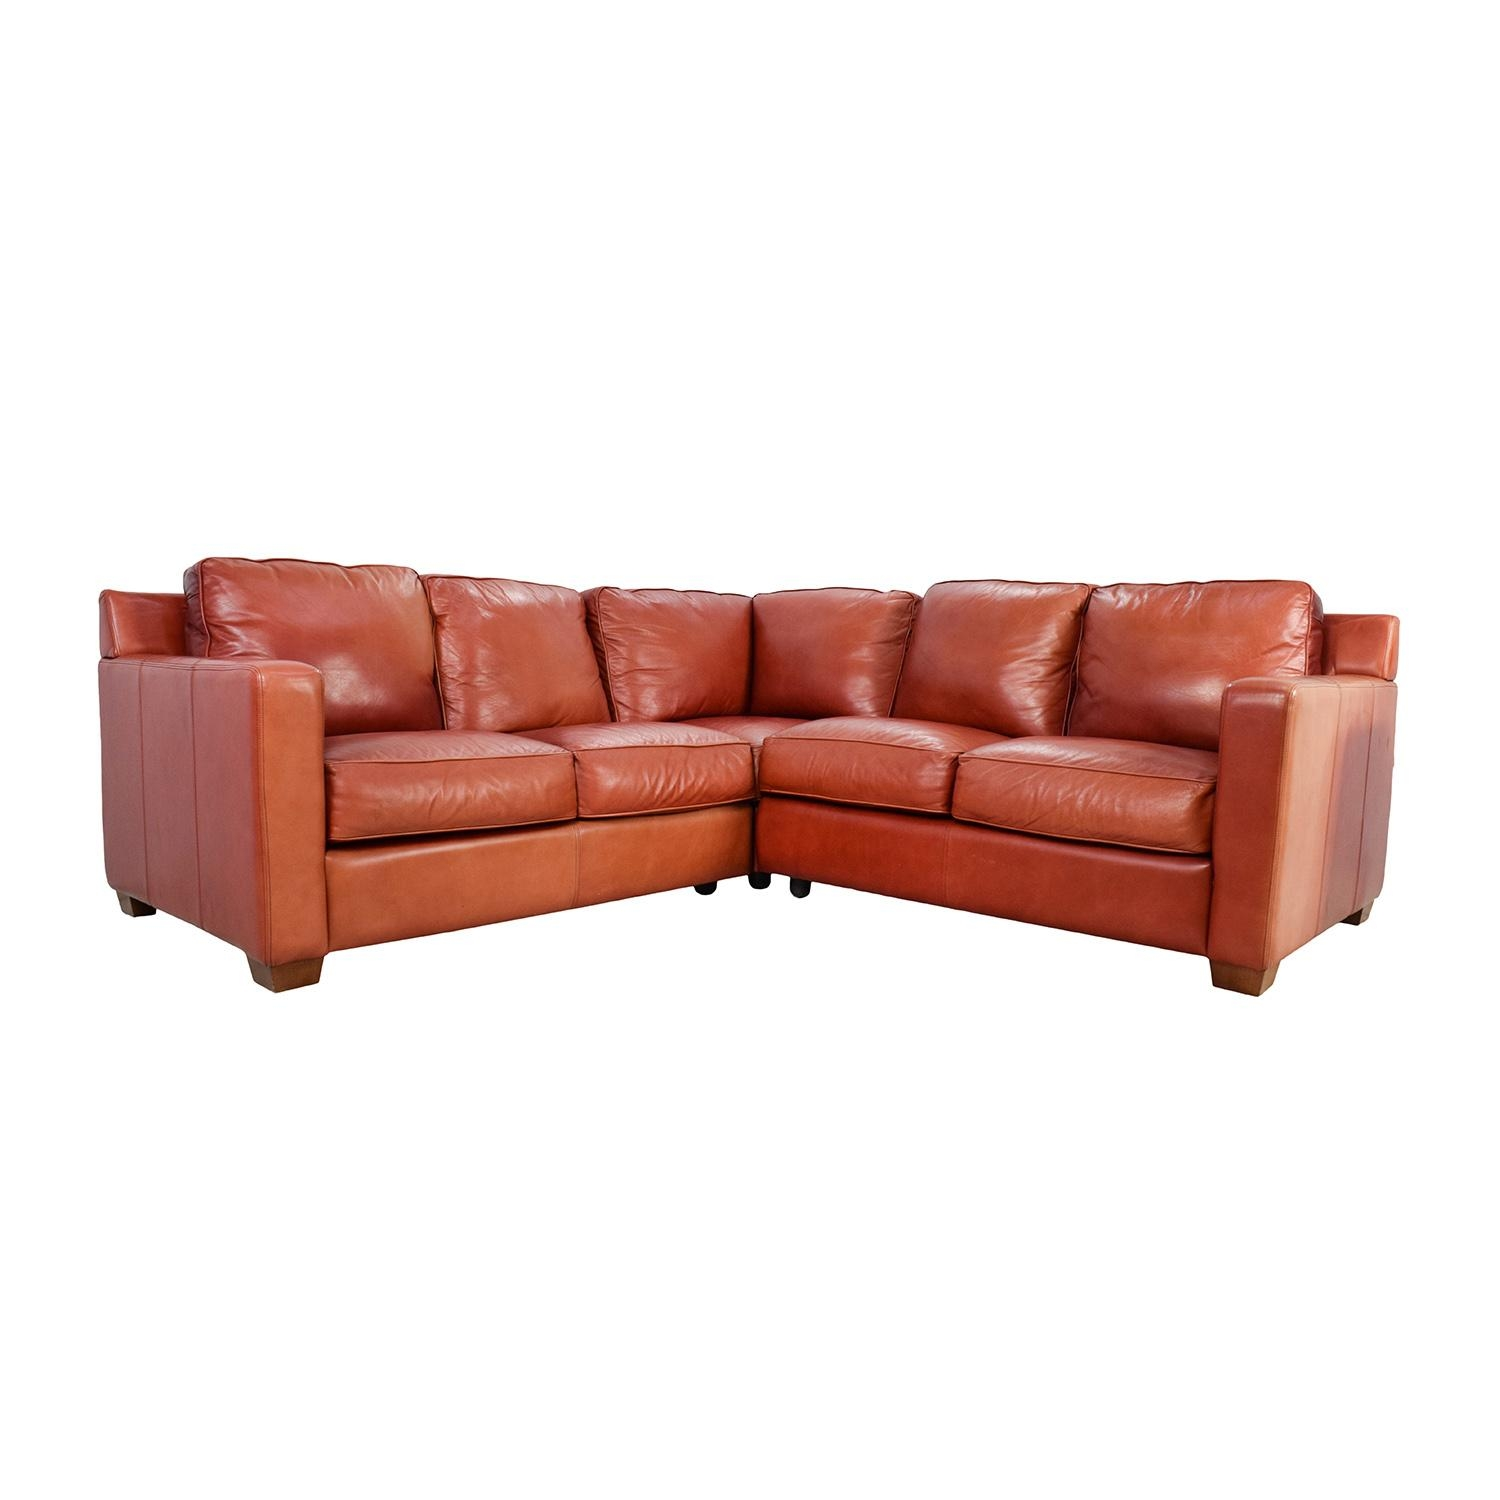 68% Off – Thomasville Thomasville Red Leather Sectional / Sofas Regarding Thomasville Leather Sectionals (View 2 of 20)